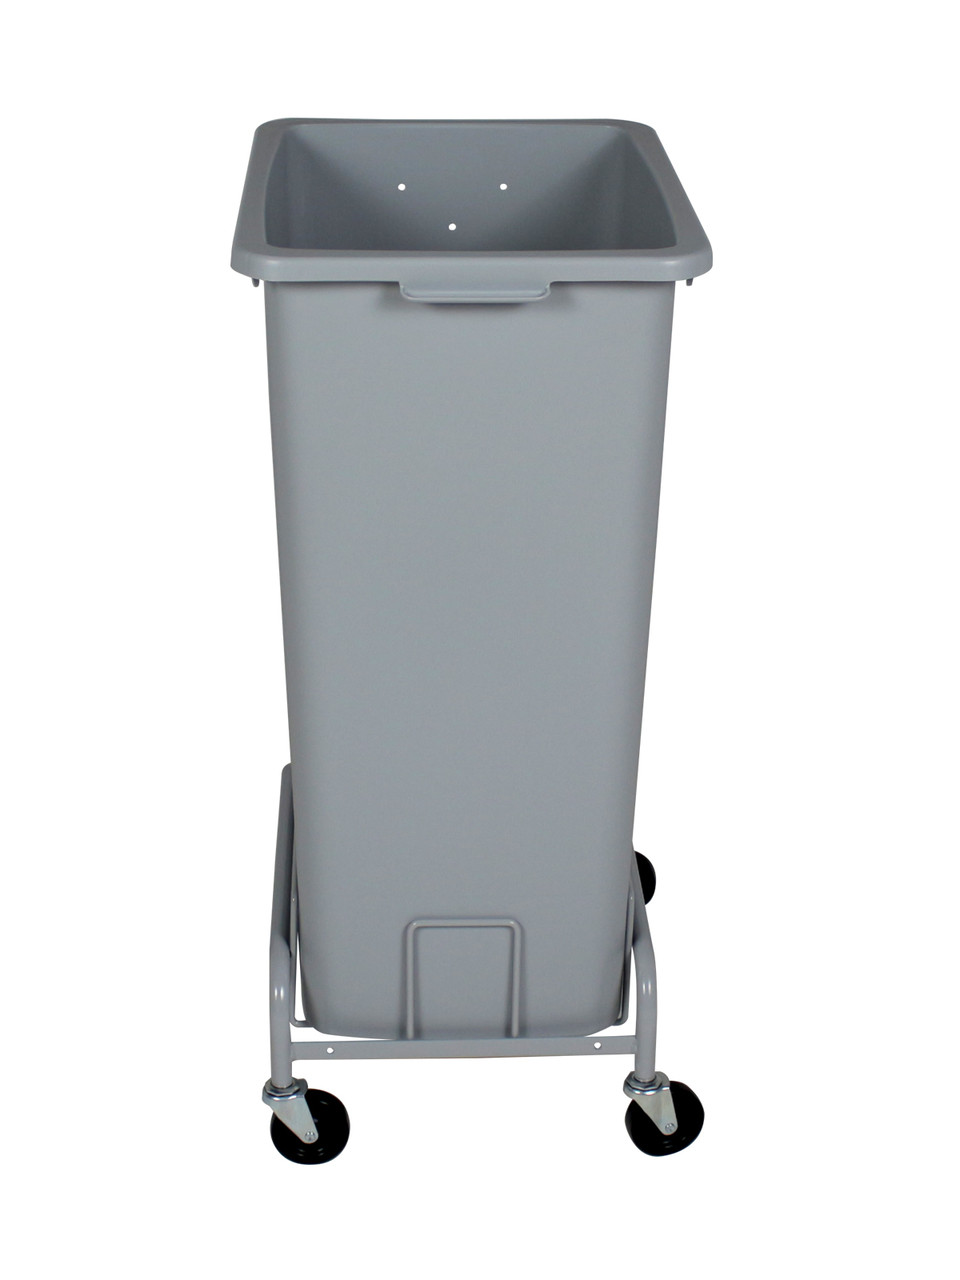 TRASH CAN NOT INCLUDED